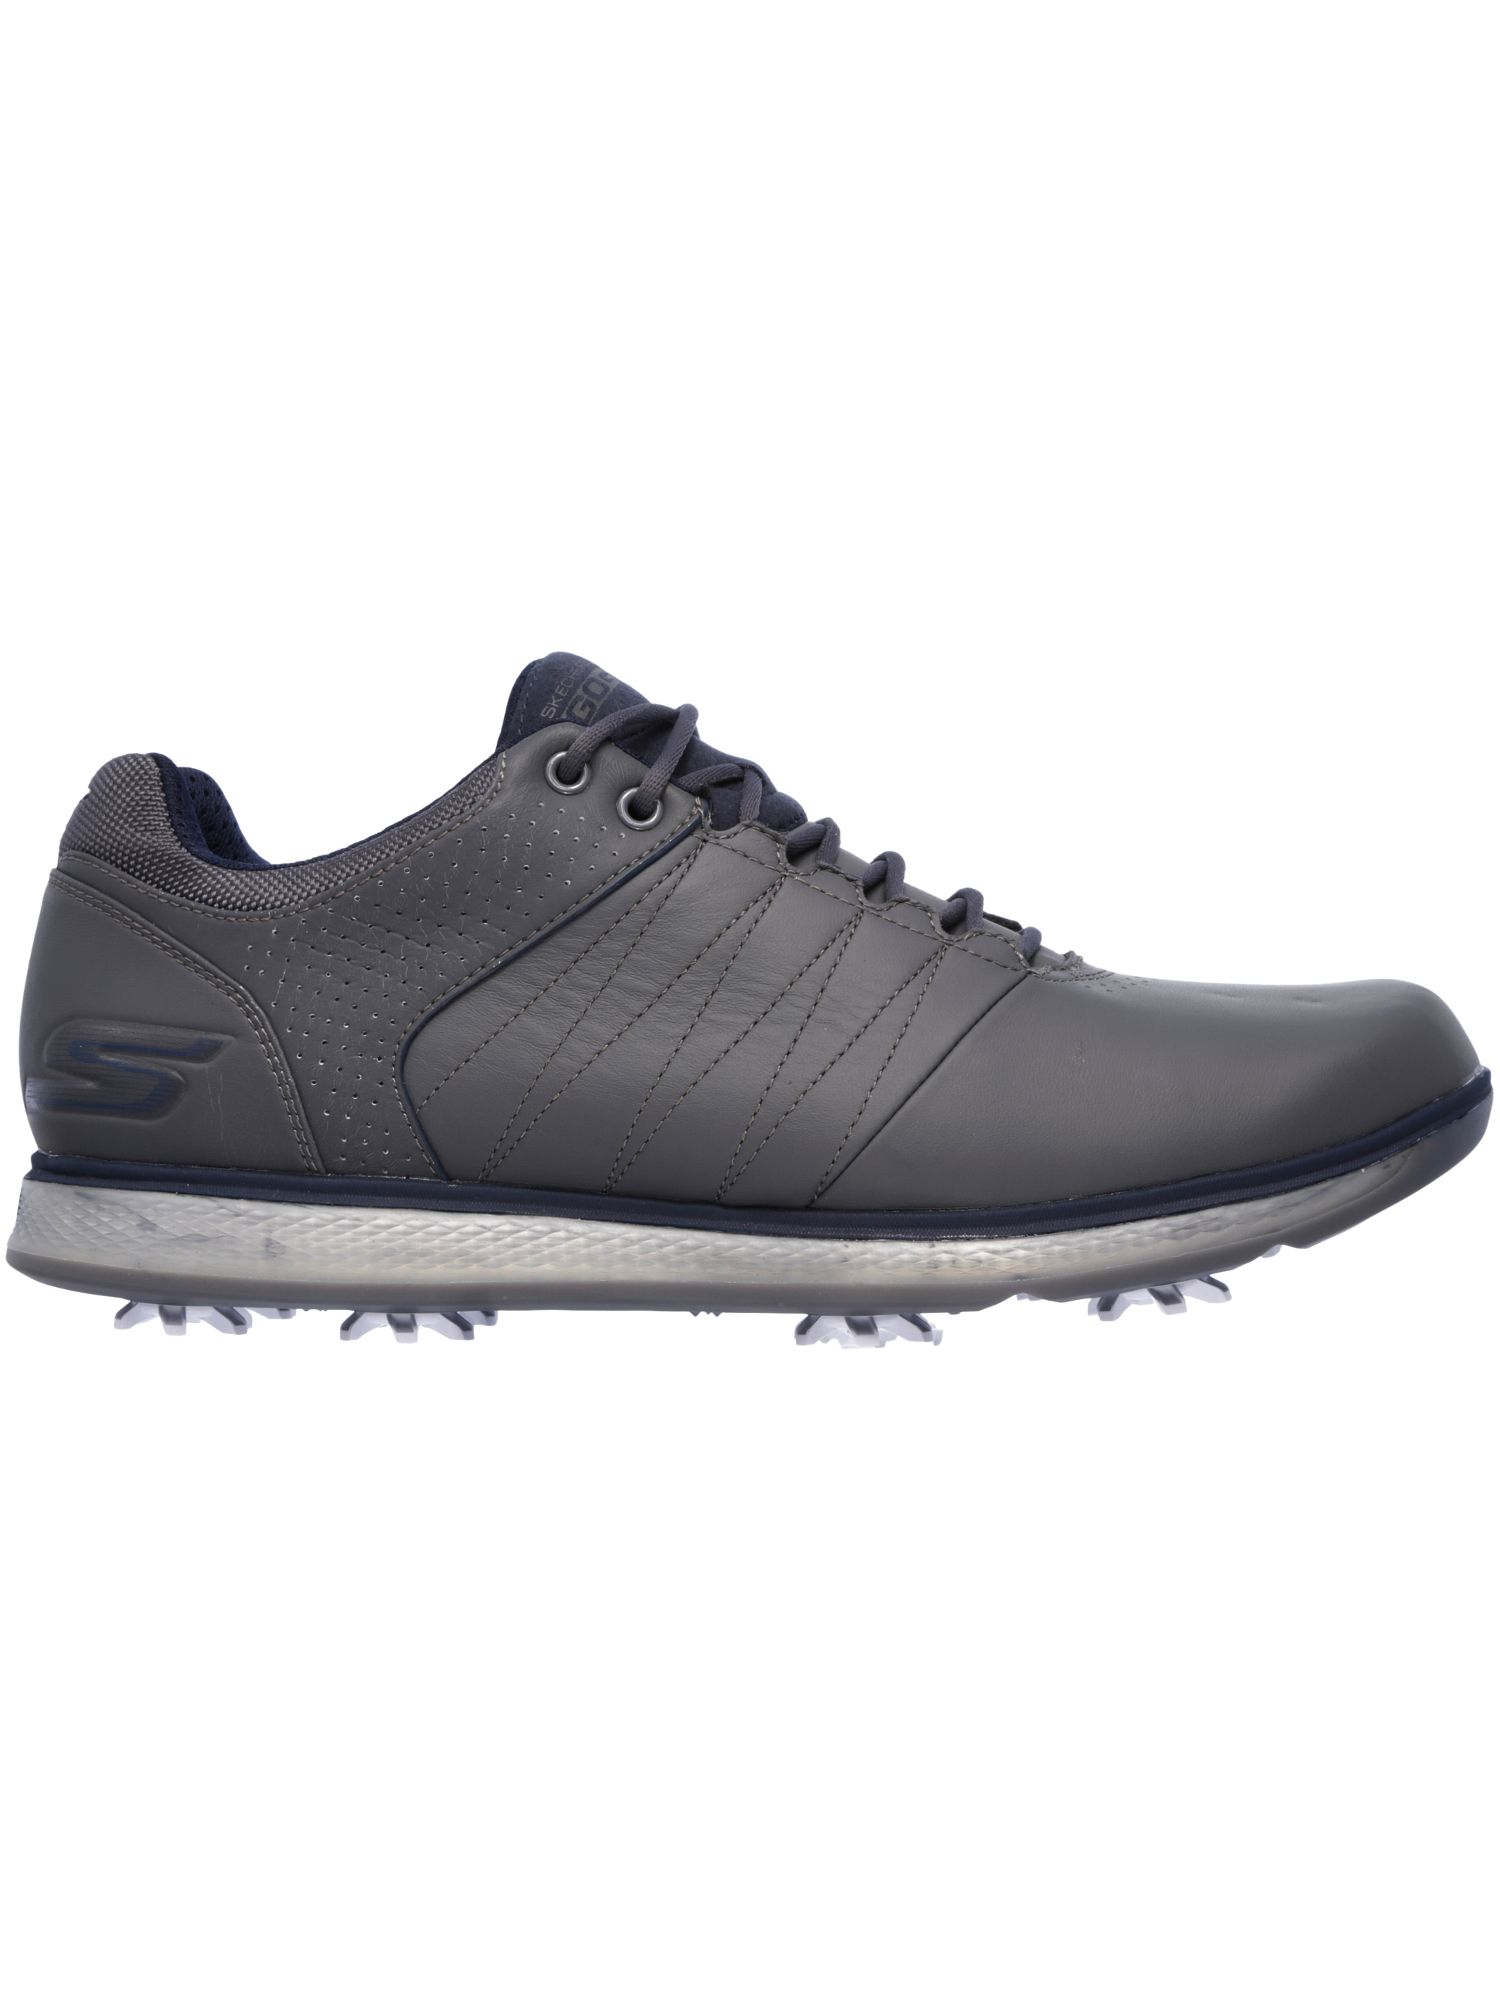 Skechers GO Golf Pro 2 Golf Shoes Grey